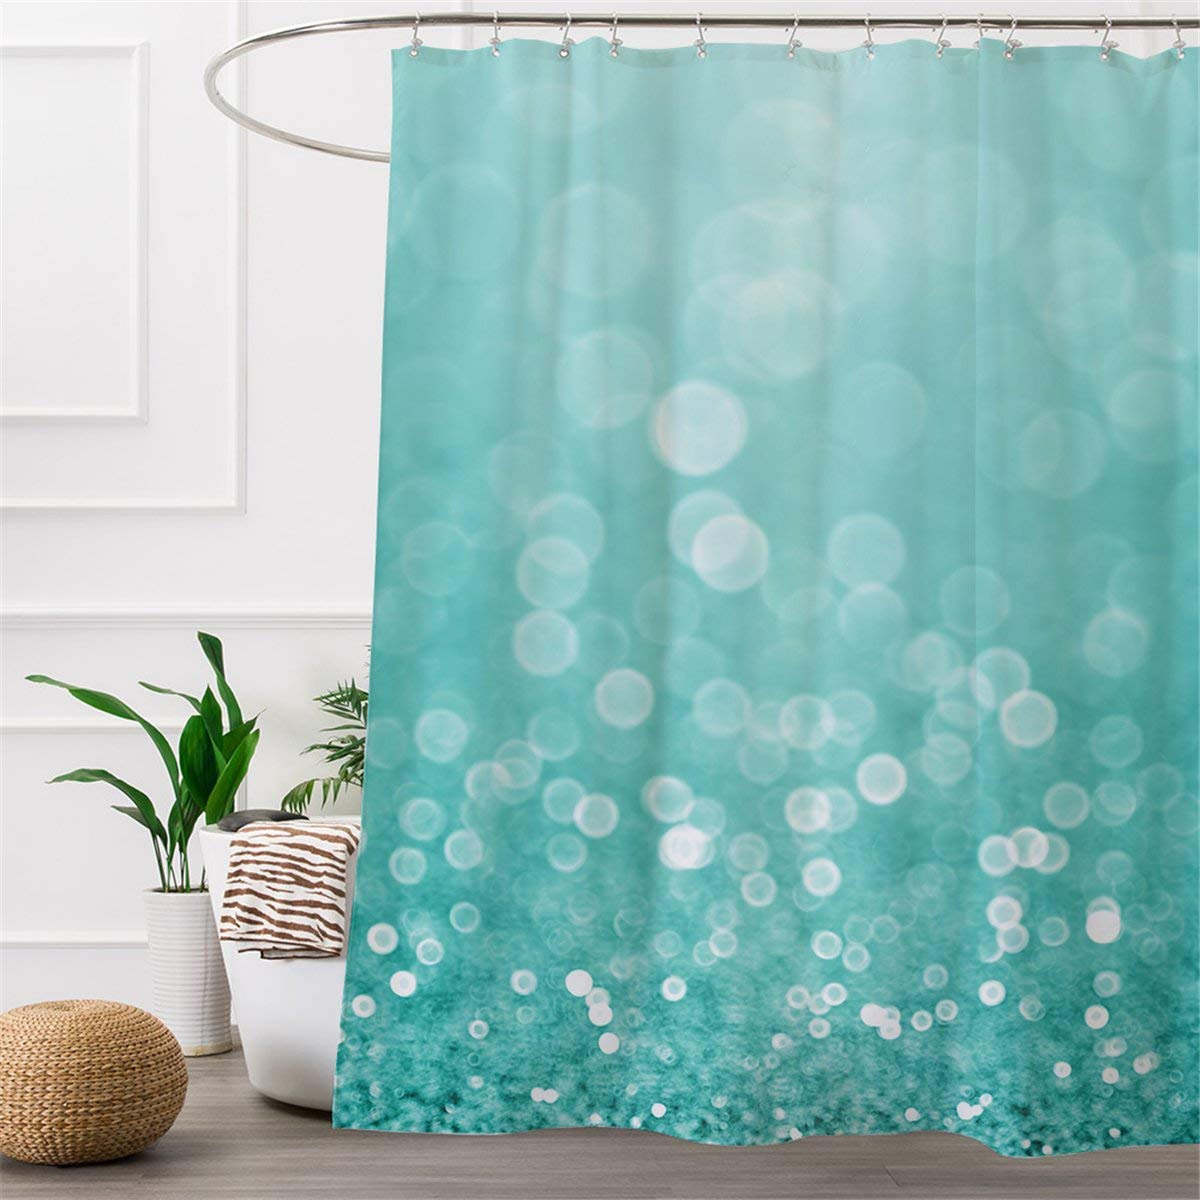 Get Quotations ARIGHTEX Water Bubble Bath Shower Curtain Turquoise Curtains For Women Waterproof Blue